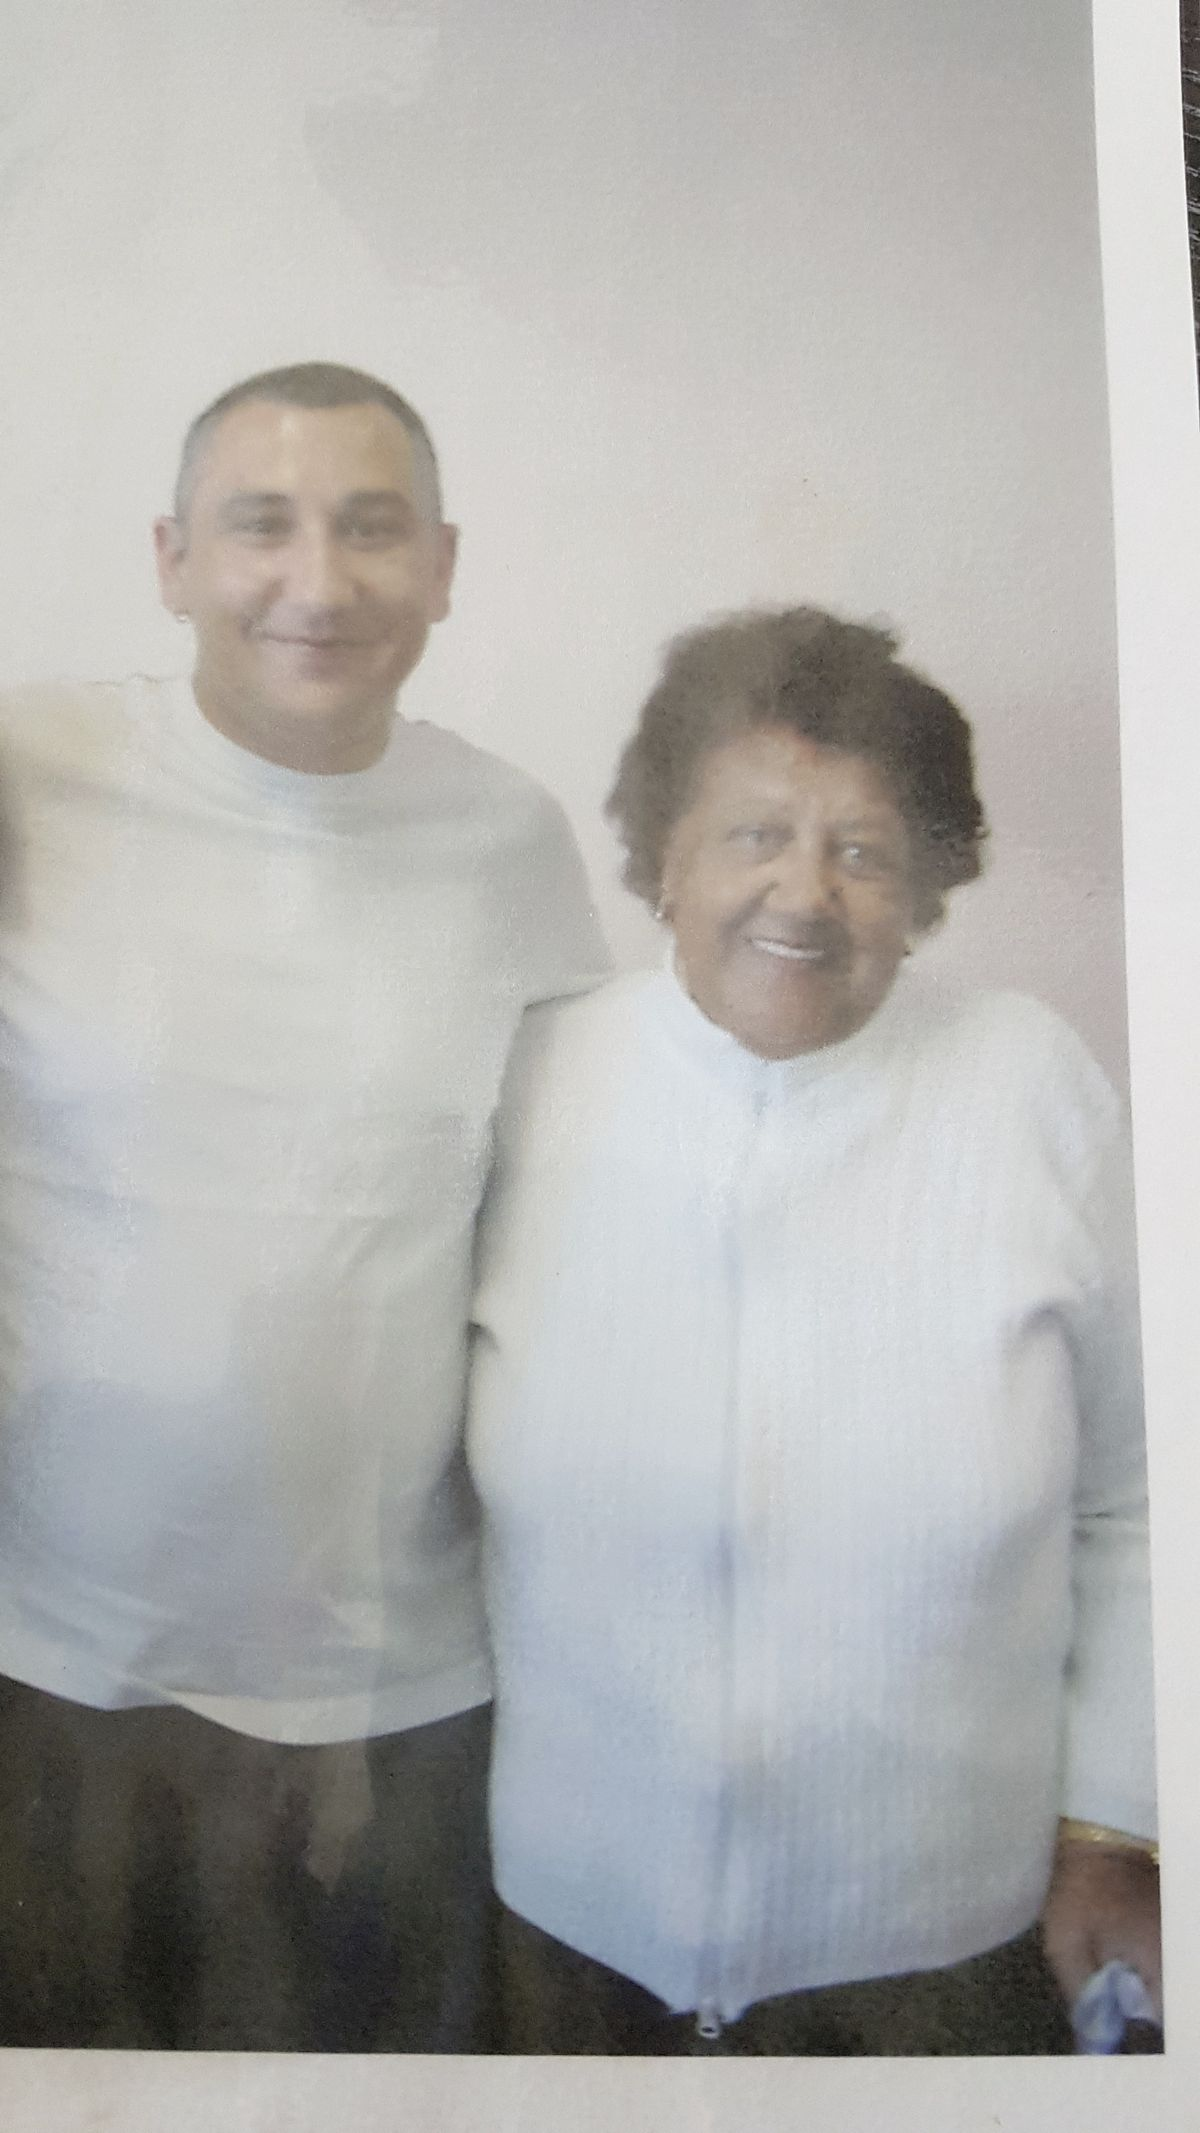 Adam Pagett had this photo with his mum taken by a prison officer only weeks before she died.